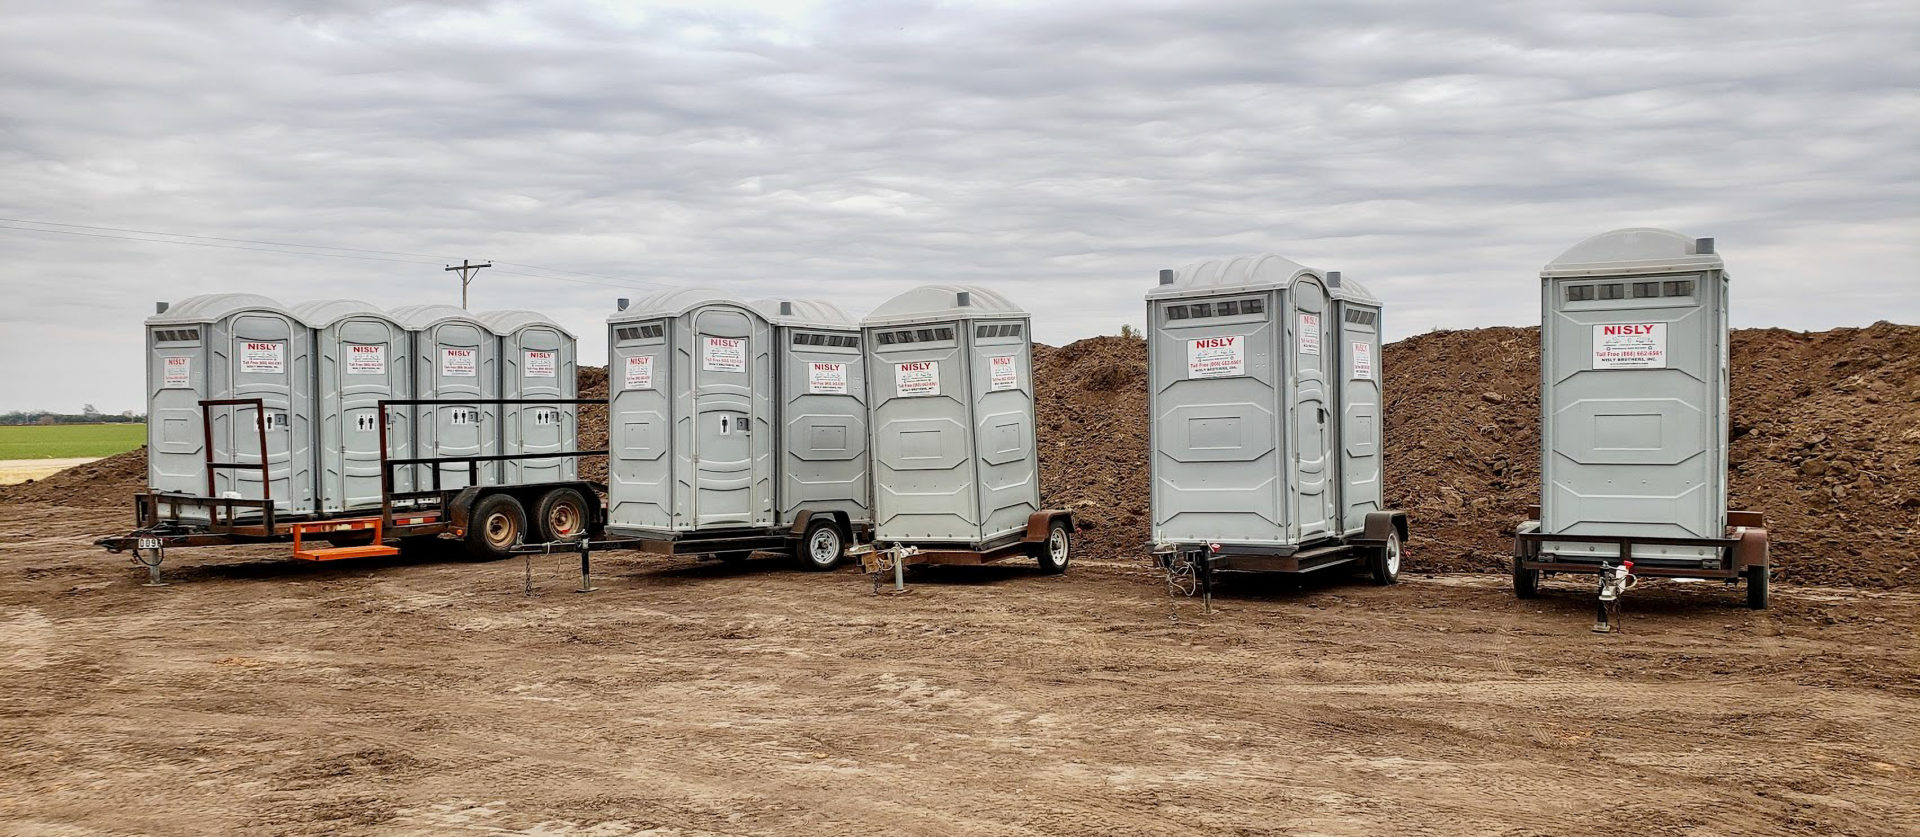 long term commercial toilet rentals in central kansas for construction sites